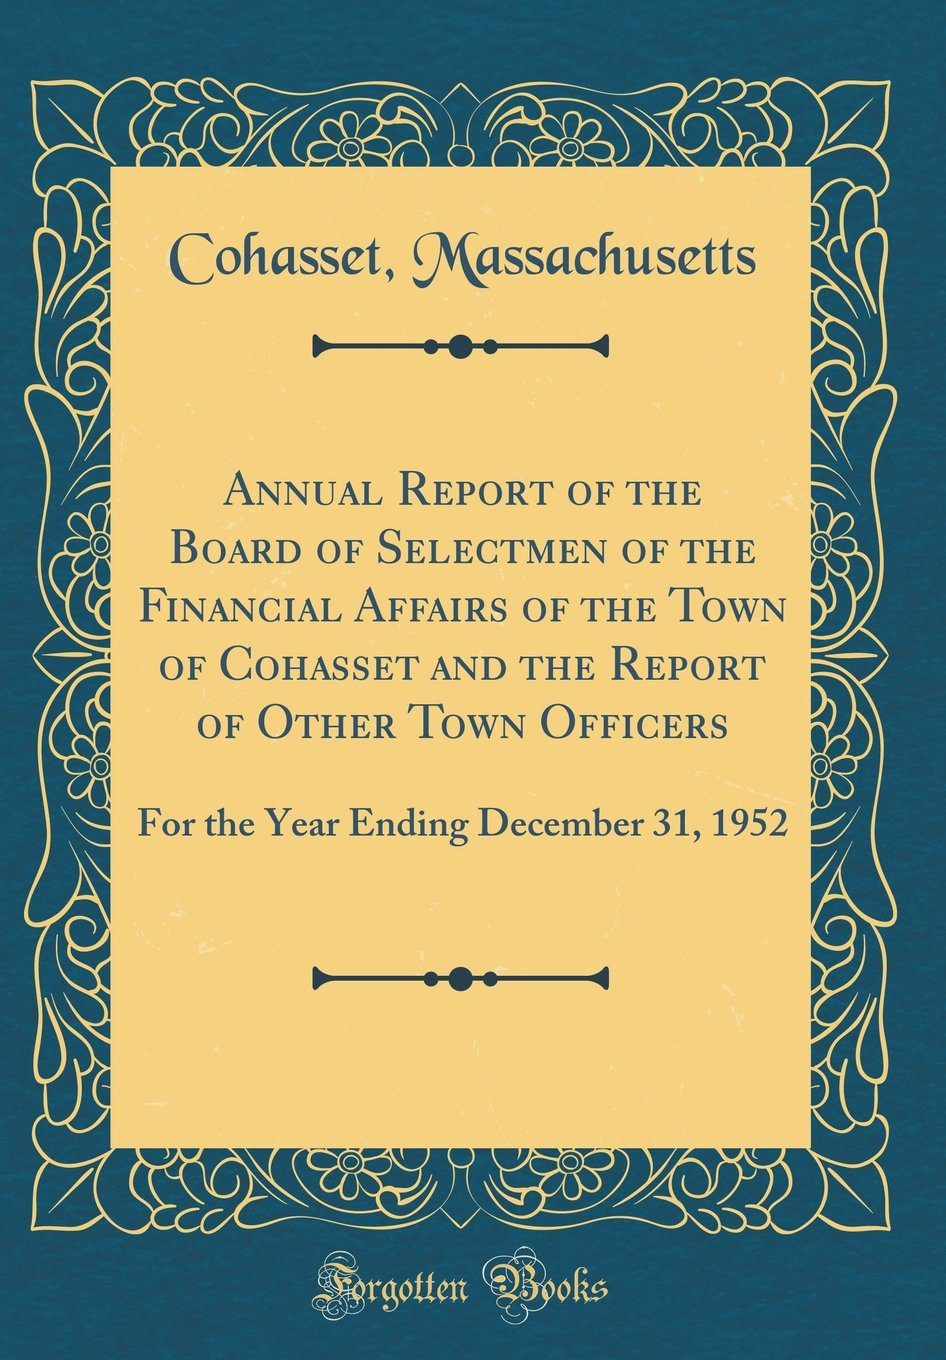 Annual Report of the Board of Selectmen of the Financial Affairs of the Town of Cohasset and the Report of Other Town Officers: For the Year Ending December 31, 1952 (Classic Reprint) ebook